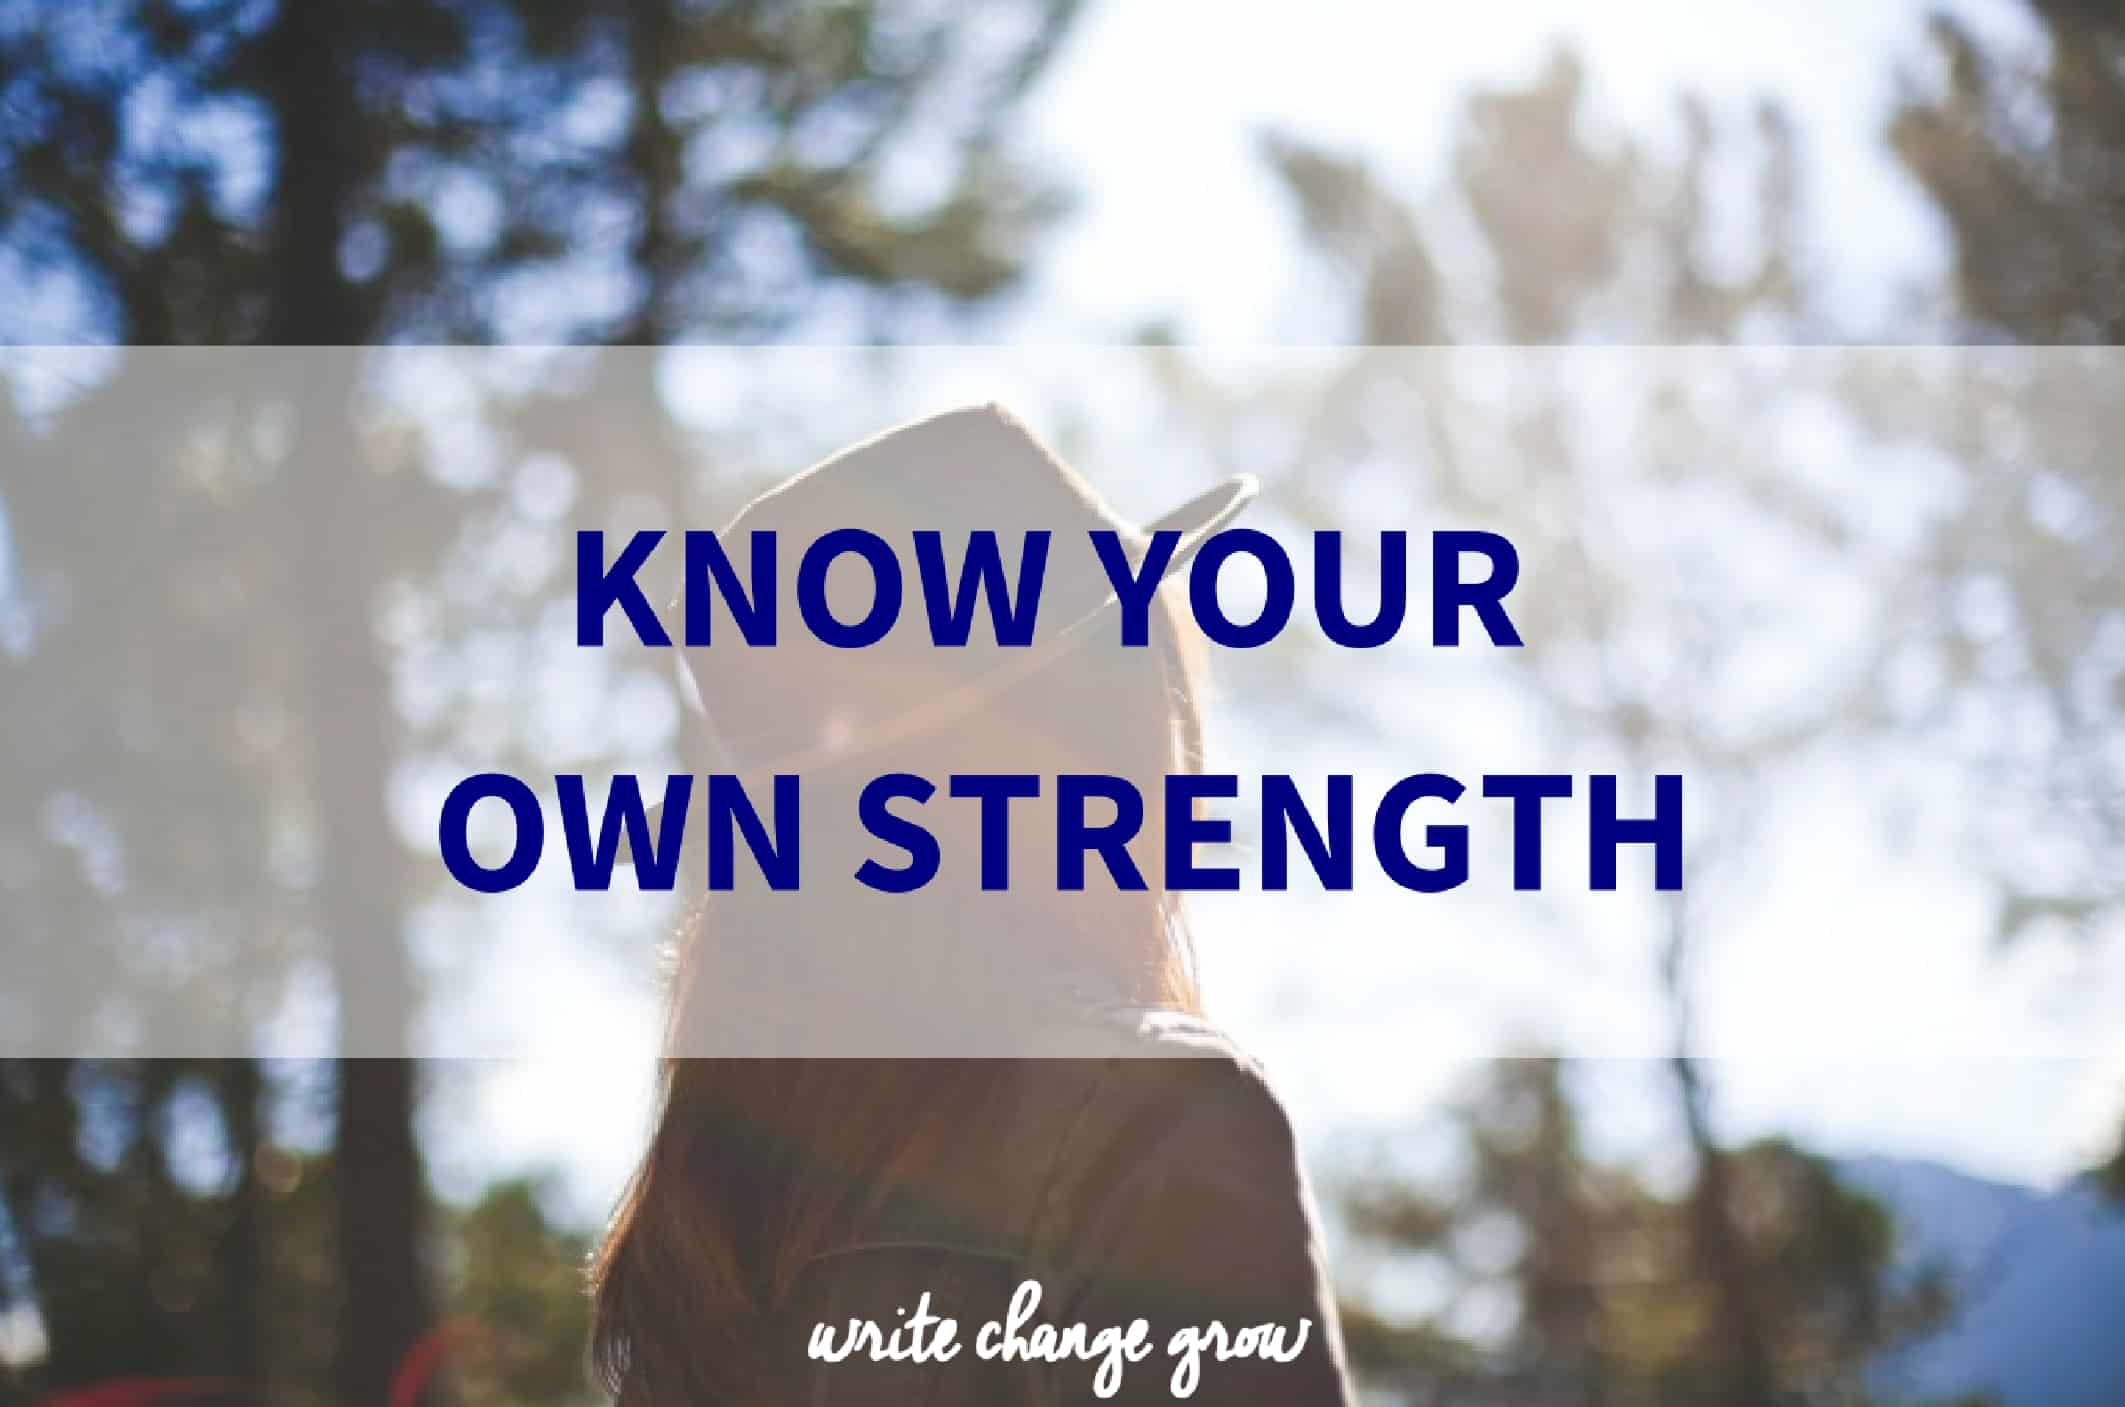 The importance of knowing your own strength